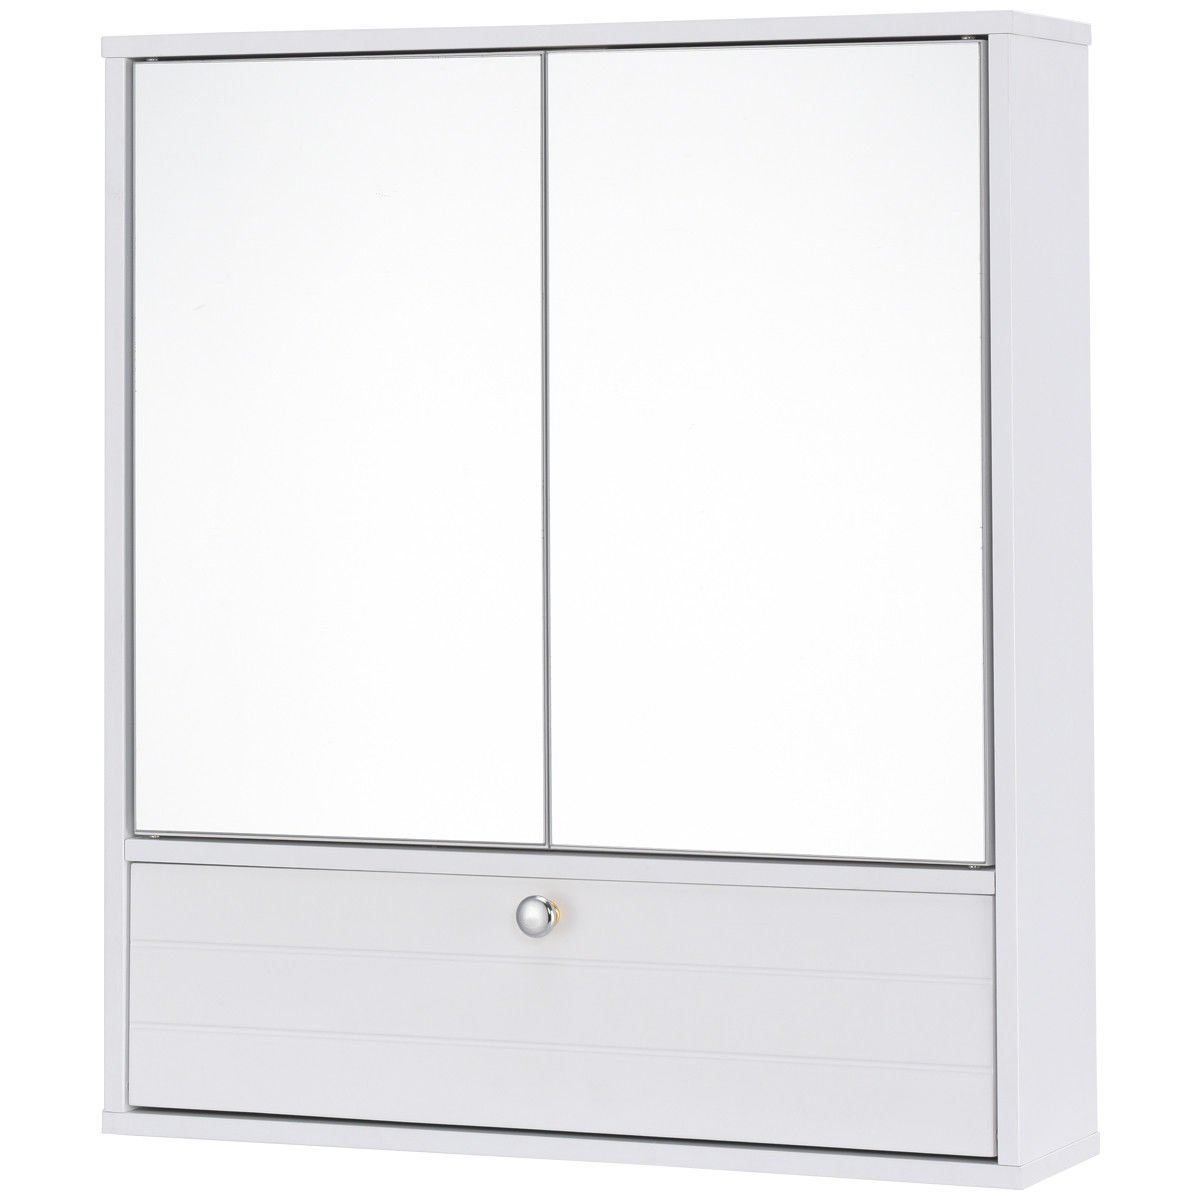 White Wall Mounted 2 Doors Bathroom Over The Toilet Mirrored Storage Cabinet Lower Storage Compartment Medicine Toiletries Makeup Storage Organizer Height Adjustable 3 Level Inner Shelf Ample Storage